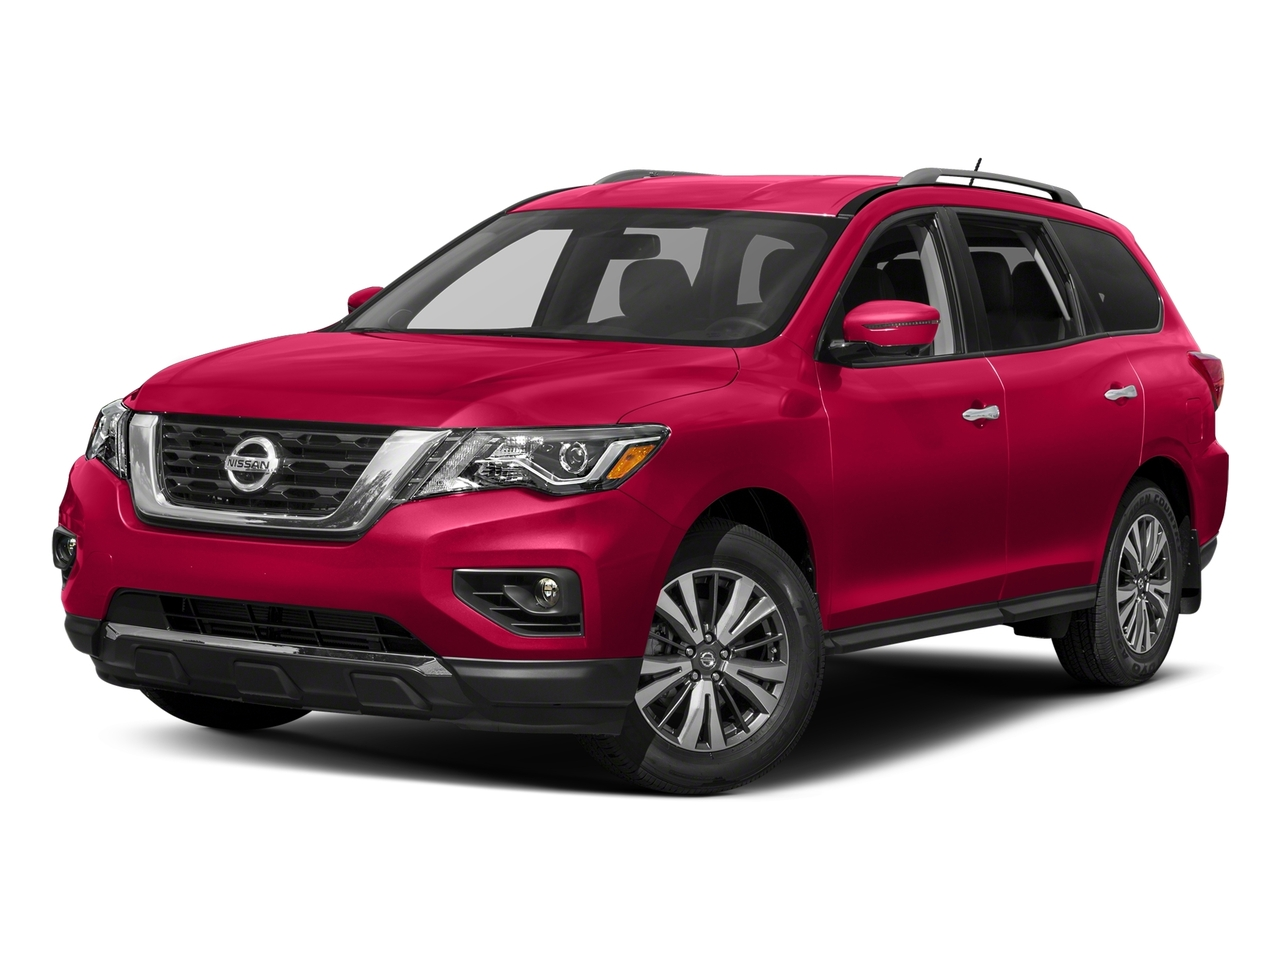 2018 Nissan Pathfinder FWD SV  Concord NC